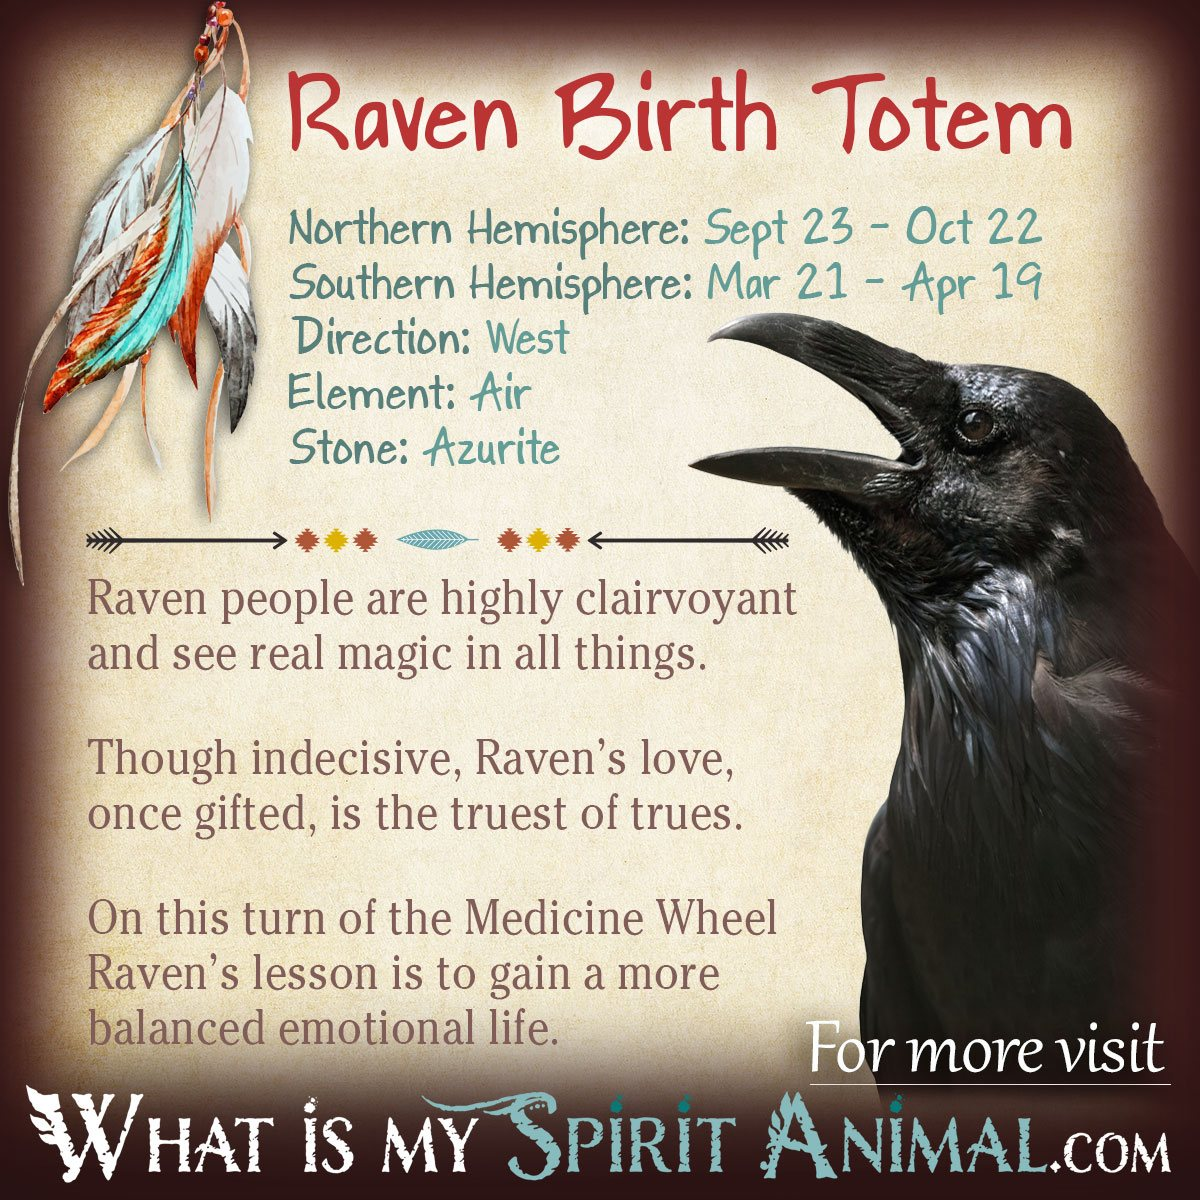 Drawn raven spirit animal Signs American Totem Native American